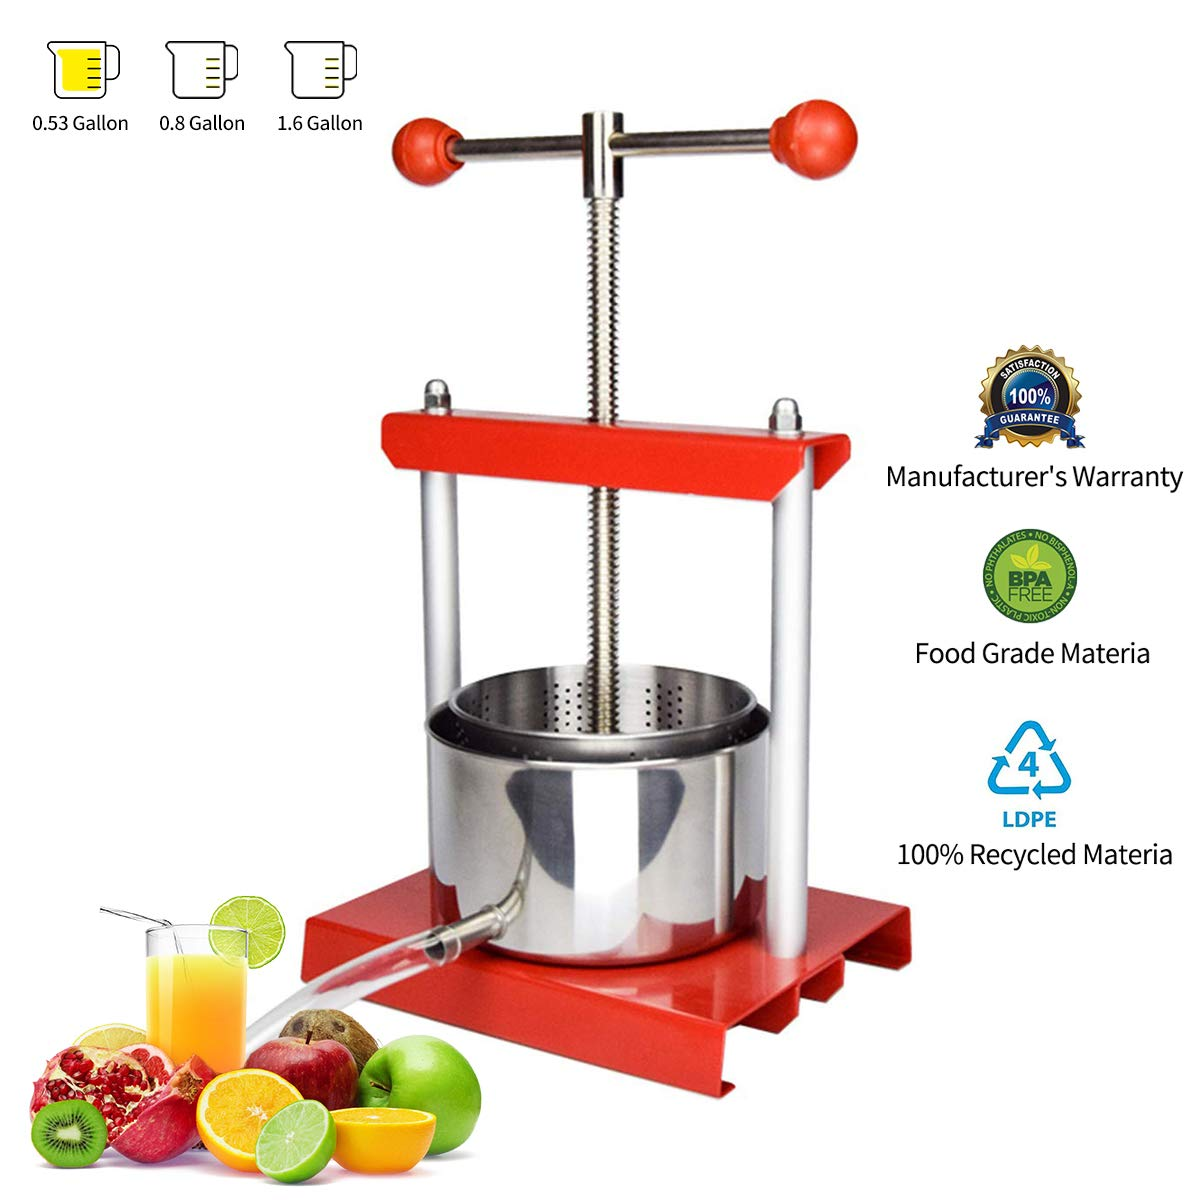 0.53 Gal Fruit Wine Press - 100% Natural Juice Making for Apple/Carrot/Orange/Berry/Vegetables,Food-Grade Stainless Steel Cheese&Tincture&Herbal Press by EJWOX